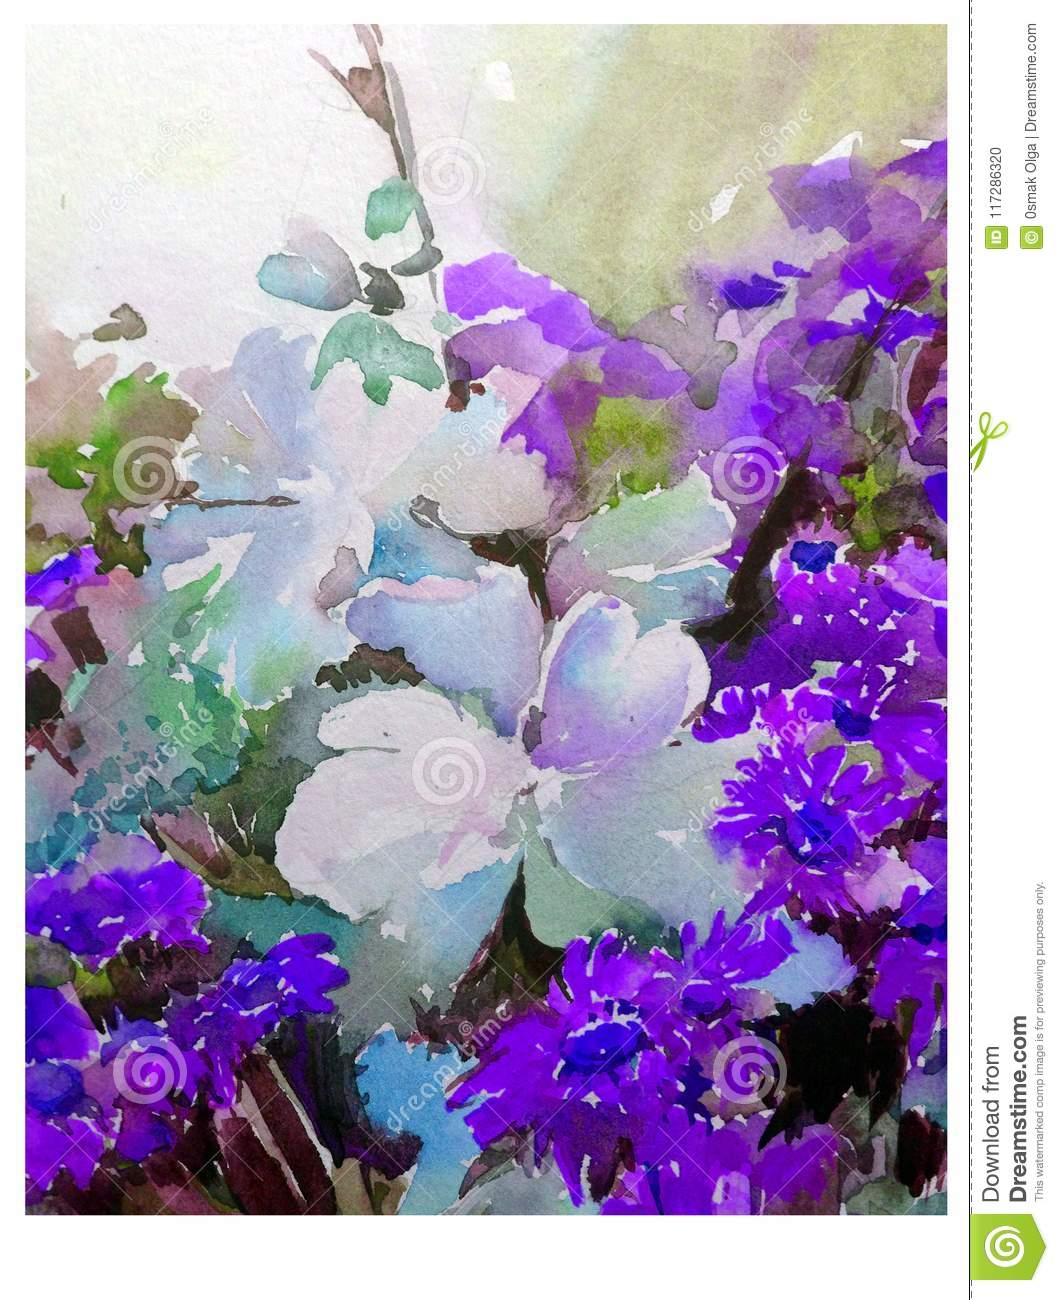 Watercolor Abstract Background Floral Pattern Meadow Summer Flower Texture Decoration Hand Beautiful Wallpaper